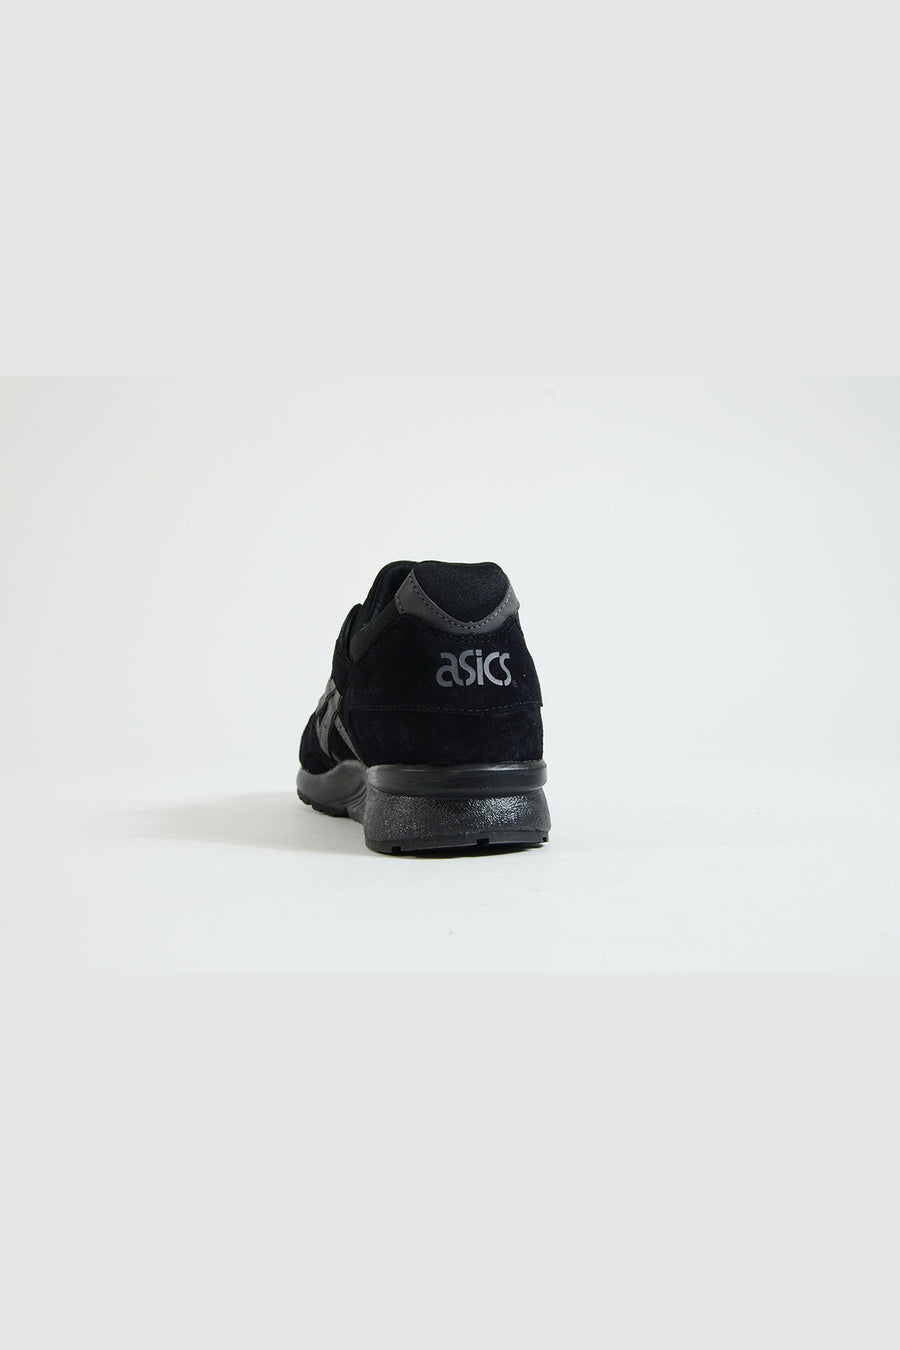 "Asics - Gel - Lyte V ""Shadow-Pack"" (Black/ Black)"